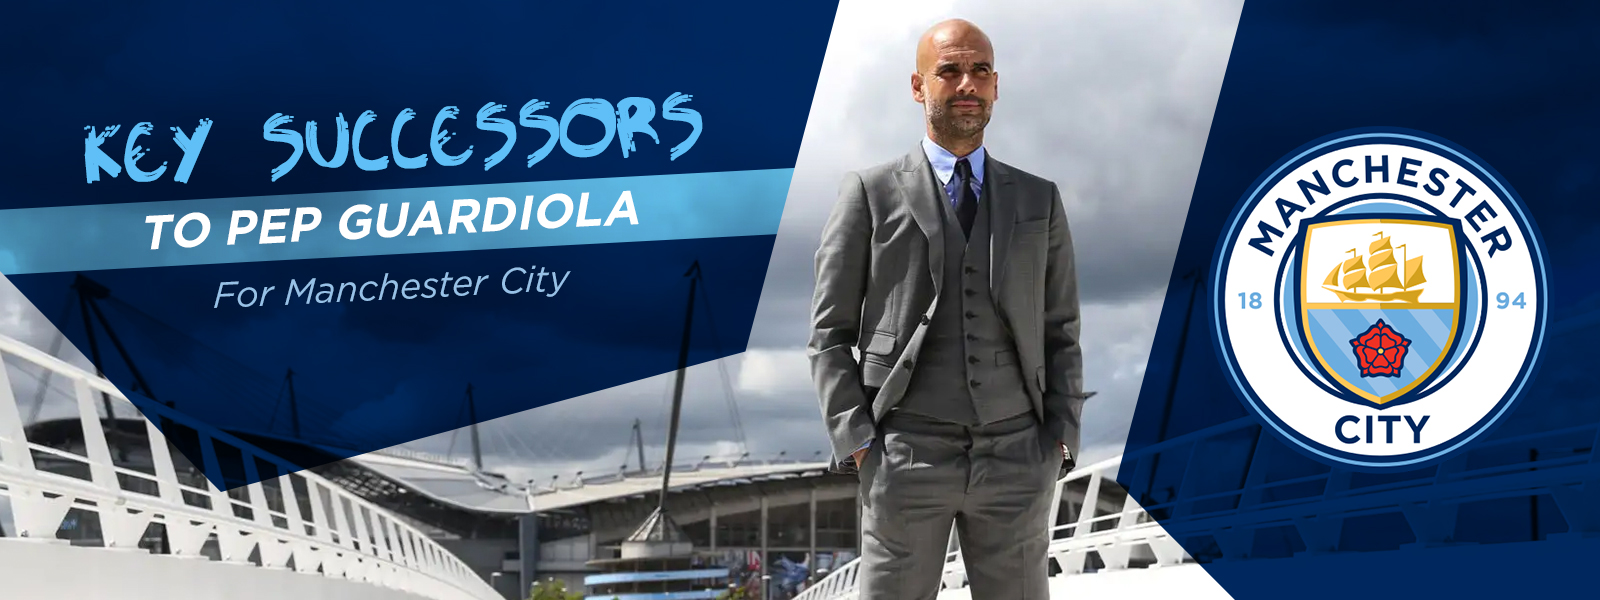 Key Successors To Pep Guardiola For Manchester City